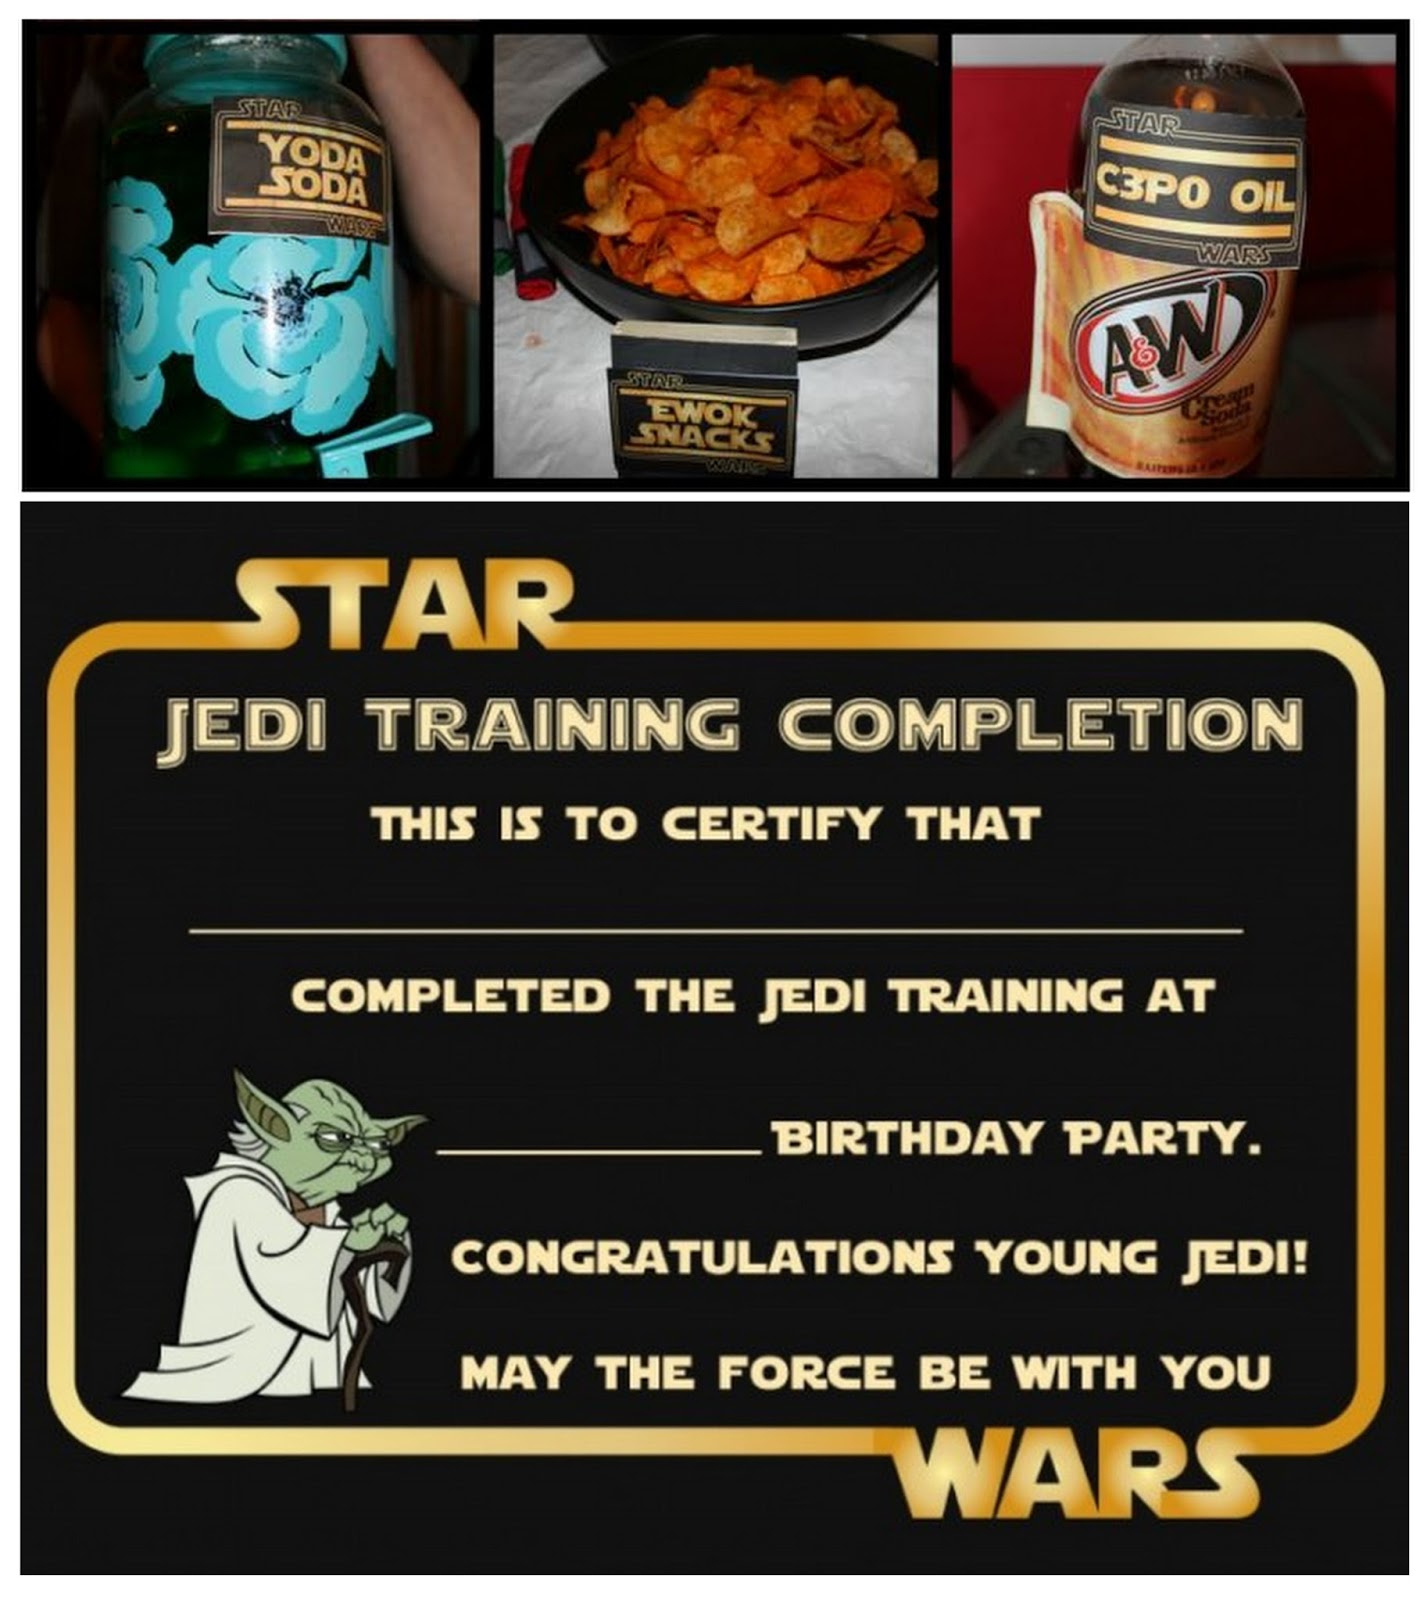 Star Wars Party: Free Printable Food Cards And Certificate. - Oh My - May The Force Be With You Free Printable